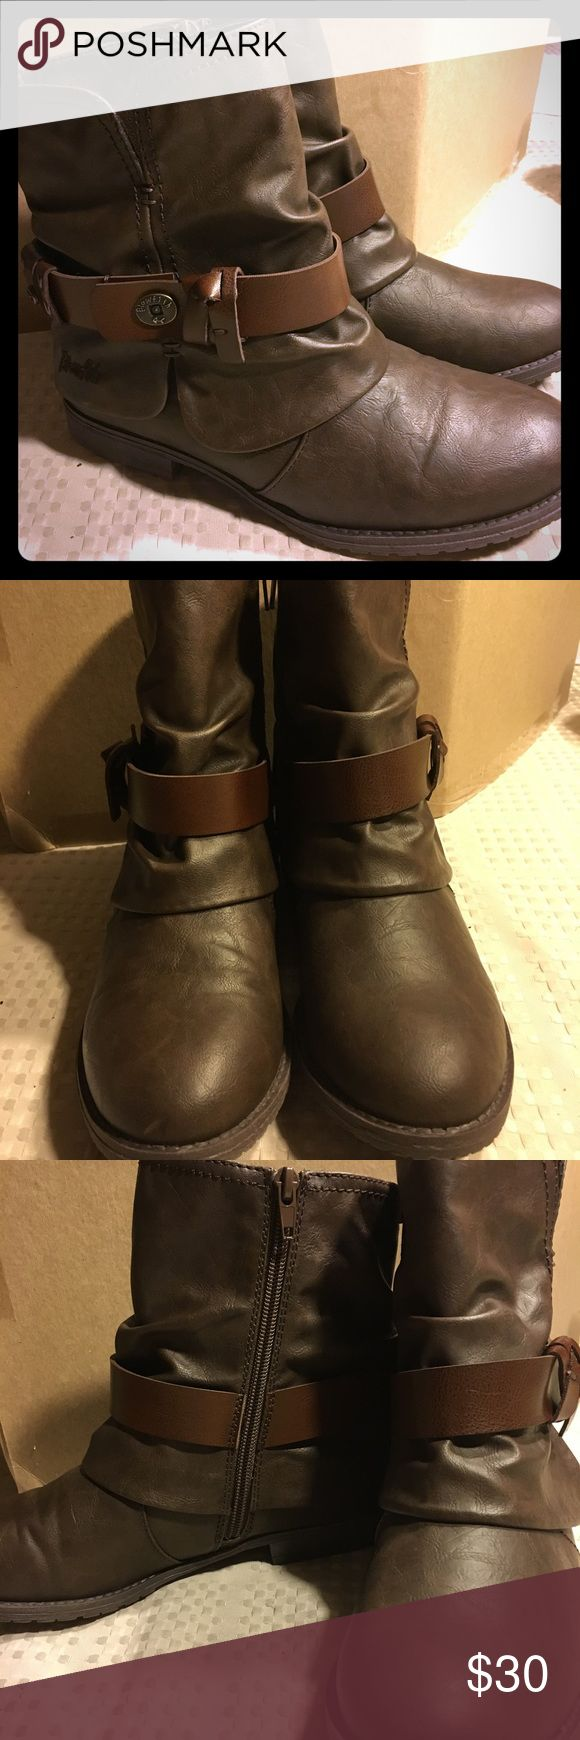 """New never worn cute brown booties! Dark brown with stylish belted (for show) ankle booties! My daughter does not like them & says they are a little tight across bridge of her foot so they may be a little more narrow fit until """"broken in"""".   Brand new without tags! See sole in pic no wear at all! They have a zipper on inside & wear true to size.  Already removed tags & recycled the box so they will be shipped in a different brand box just an FYI 😉 Blowfish Shoes Ankle Boots & Booties"""